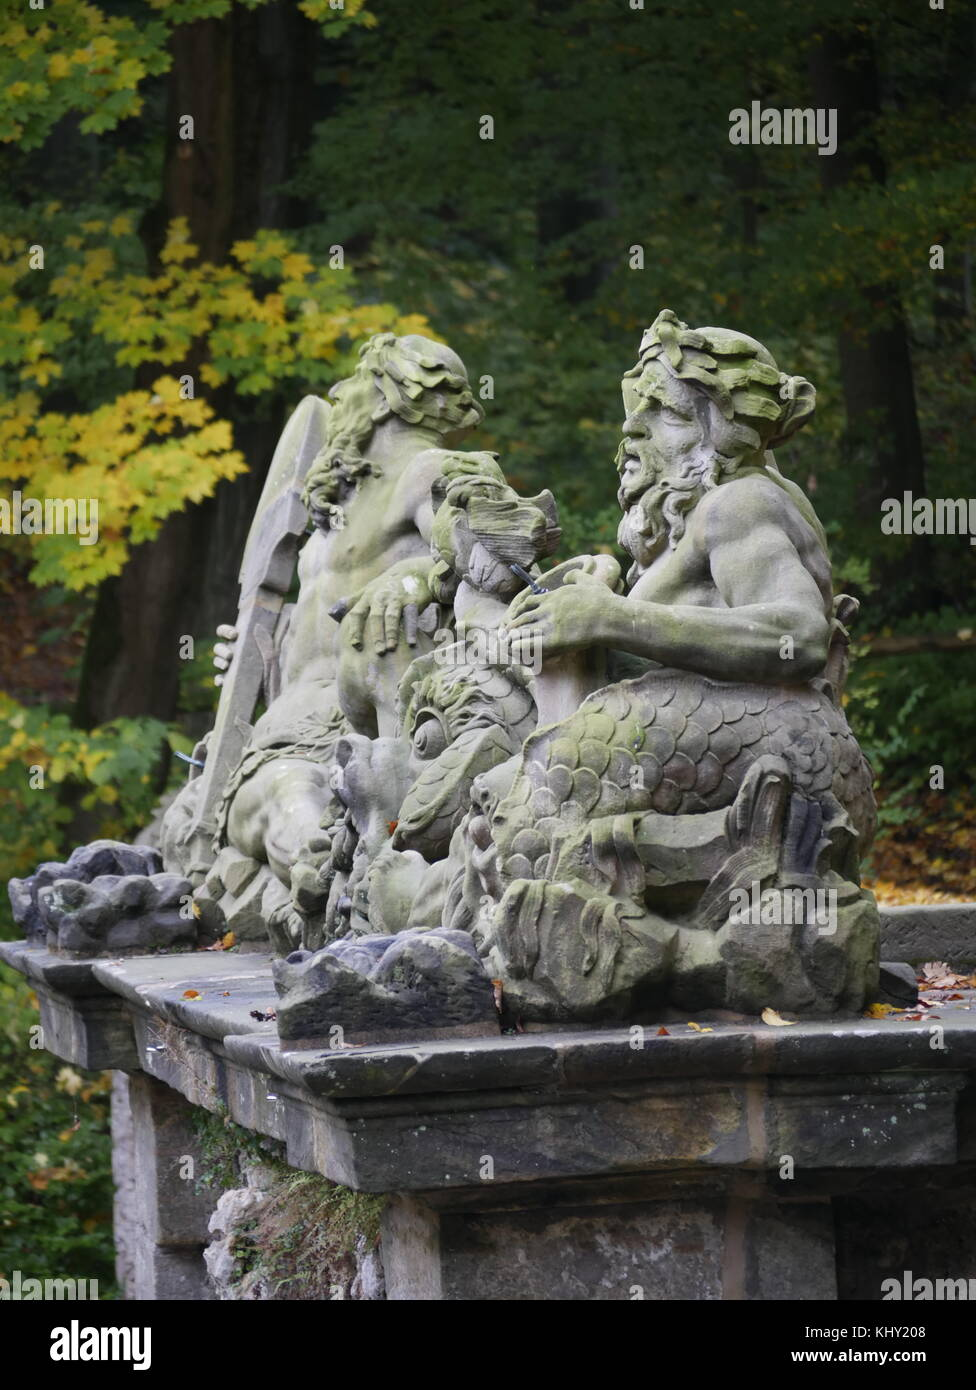 Sculpture work in the Bayreuth Hermitage (Eremitage Bayreuth, Untere Grotte) - Stock Image